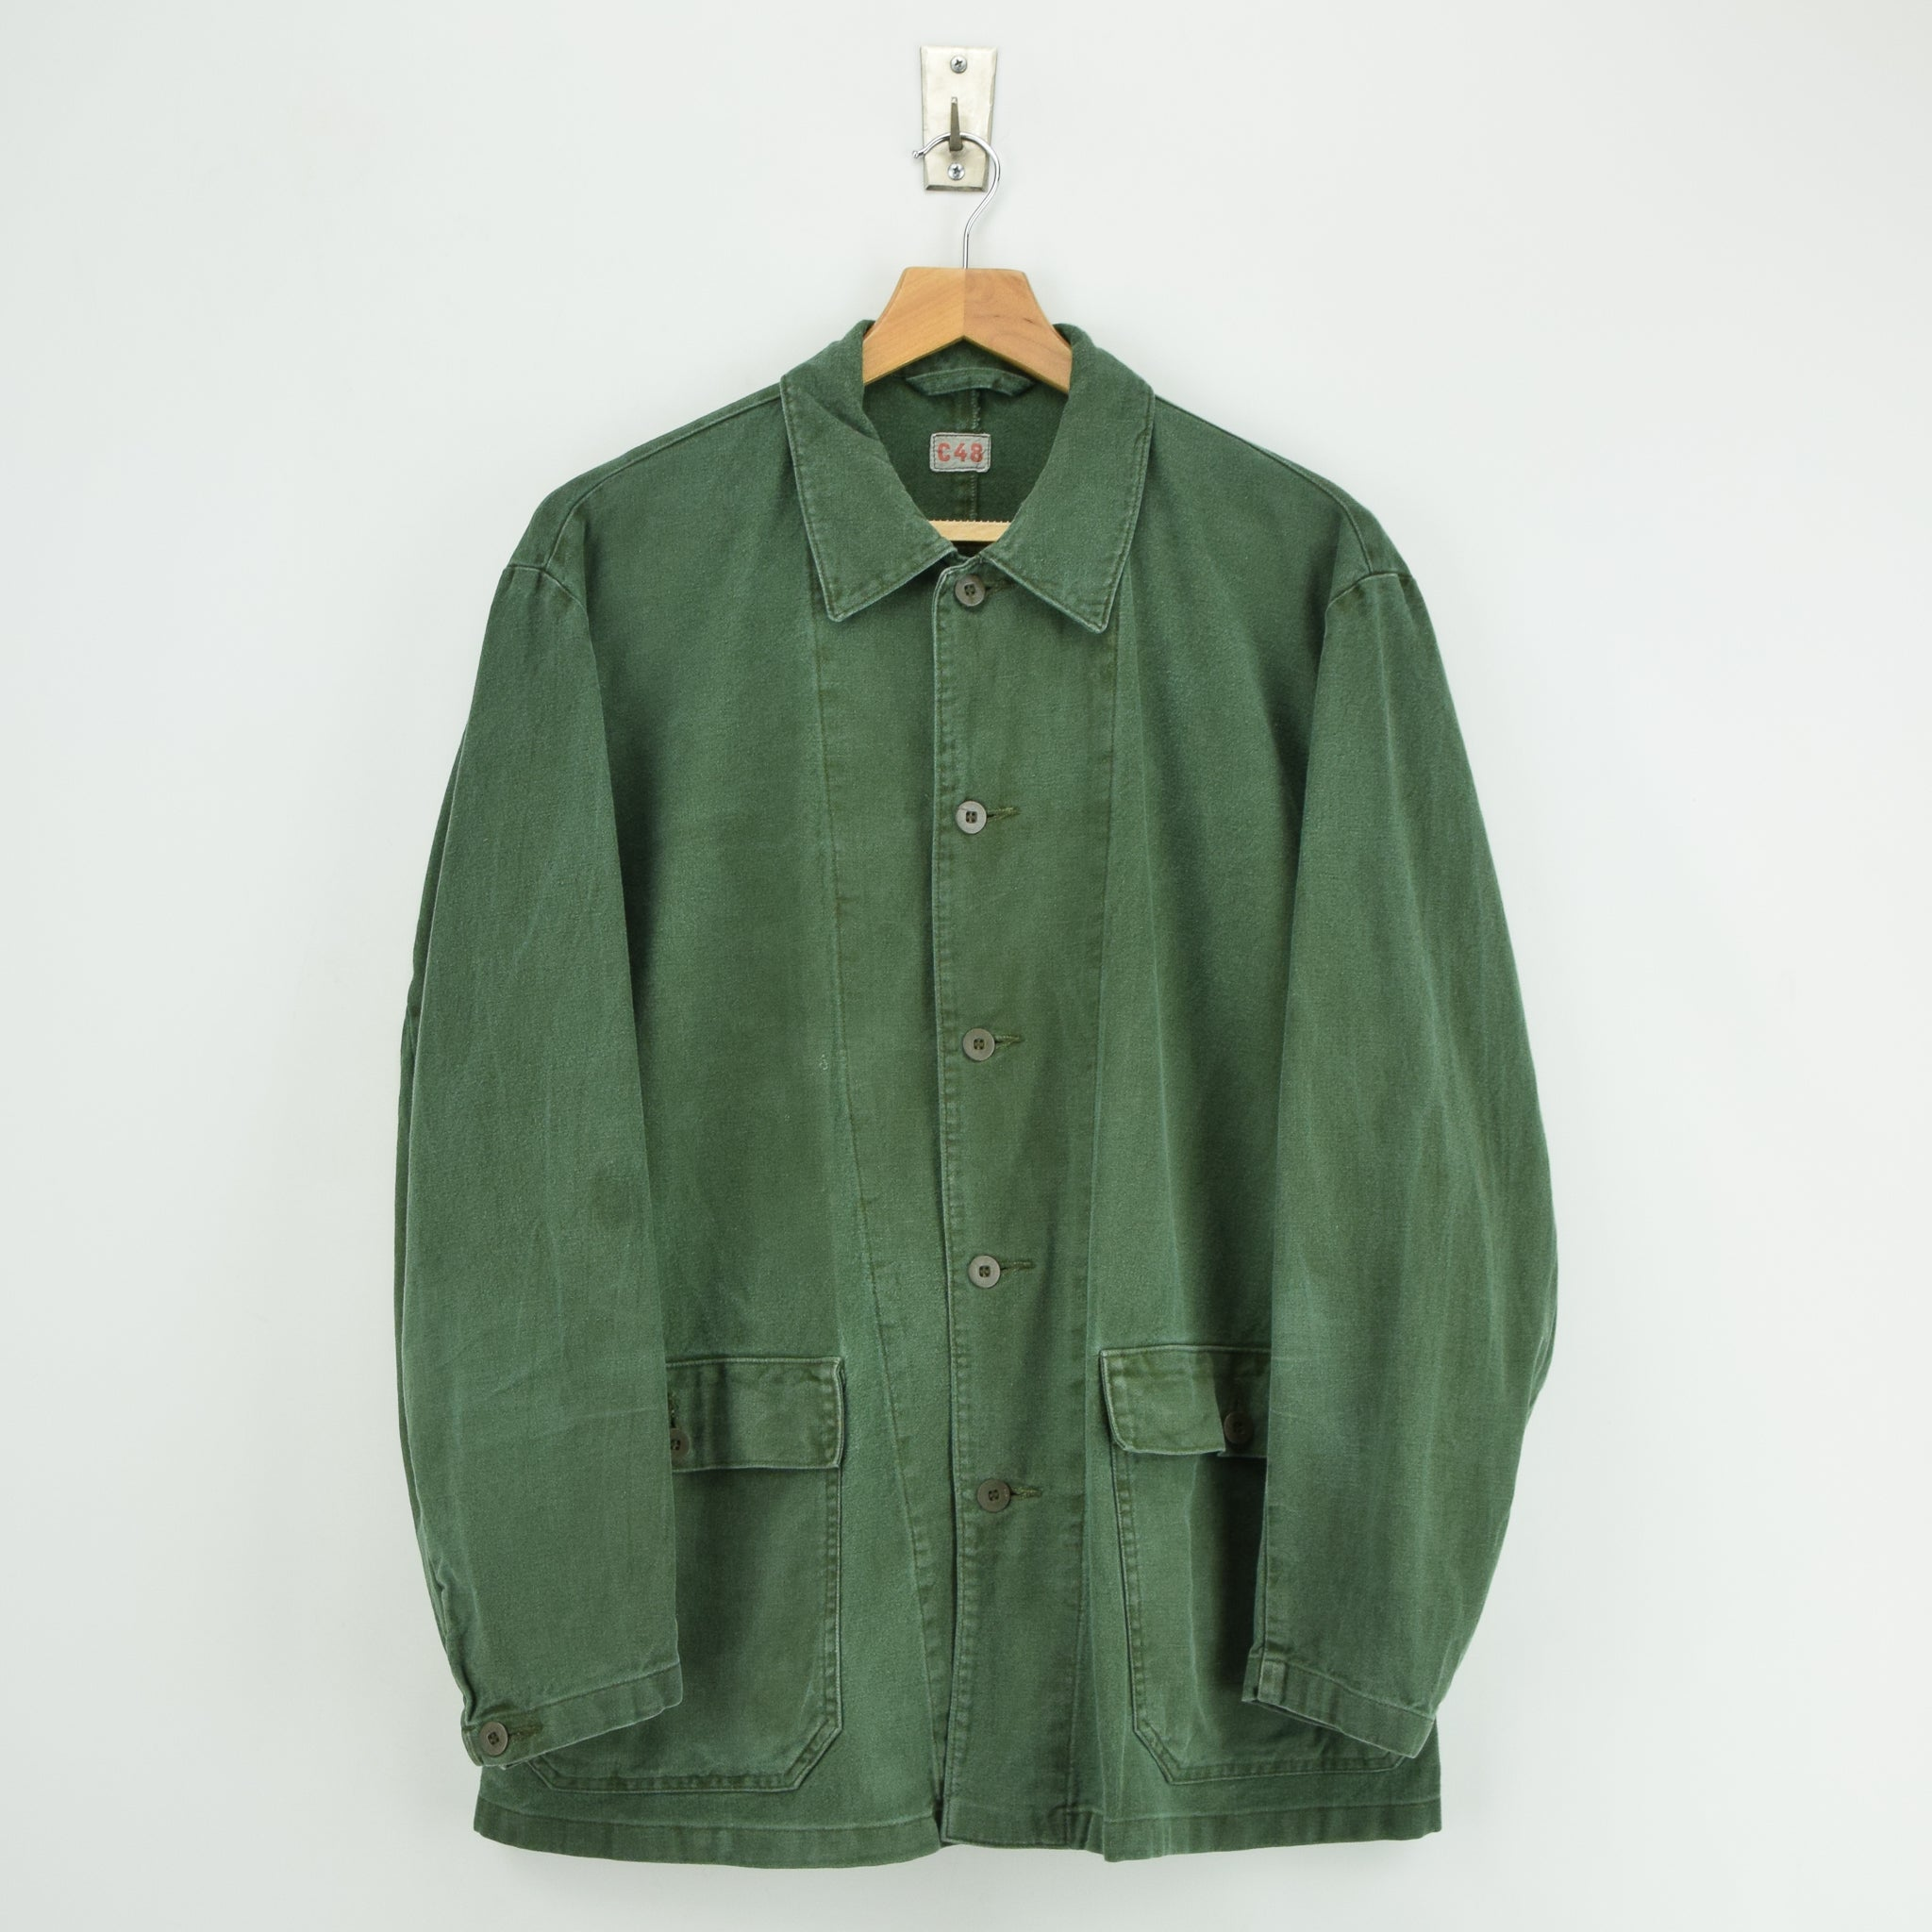 Vintage Swedish Worker Style Green Distressed Military Cotton Field Jacket M / L front